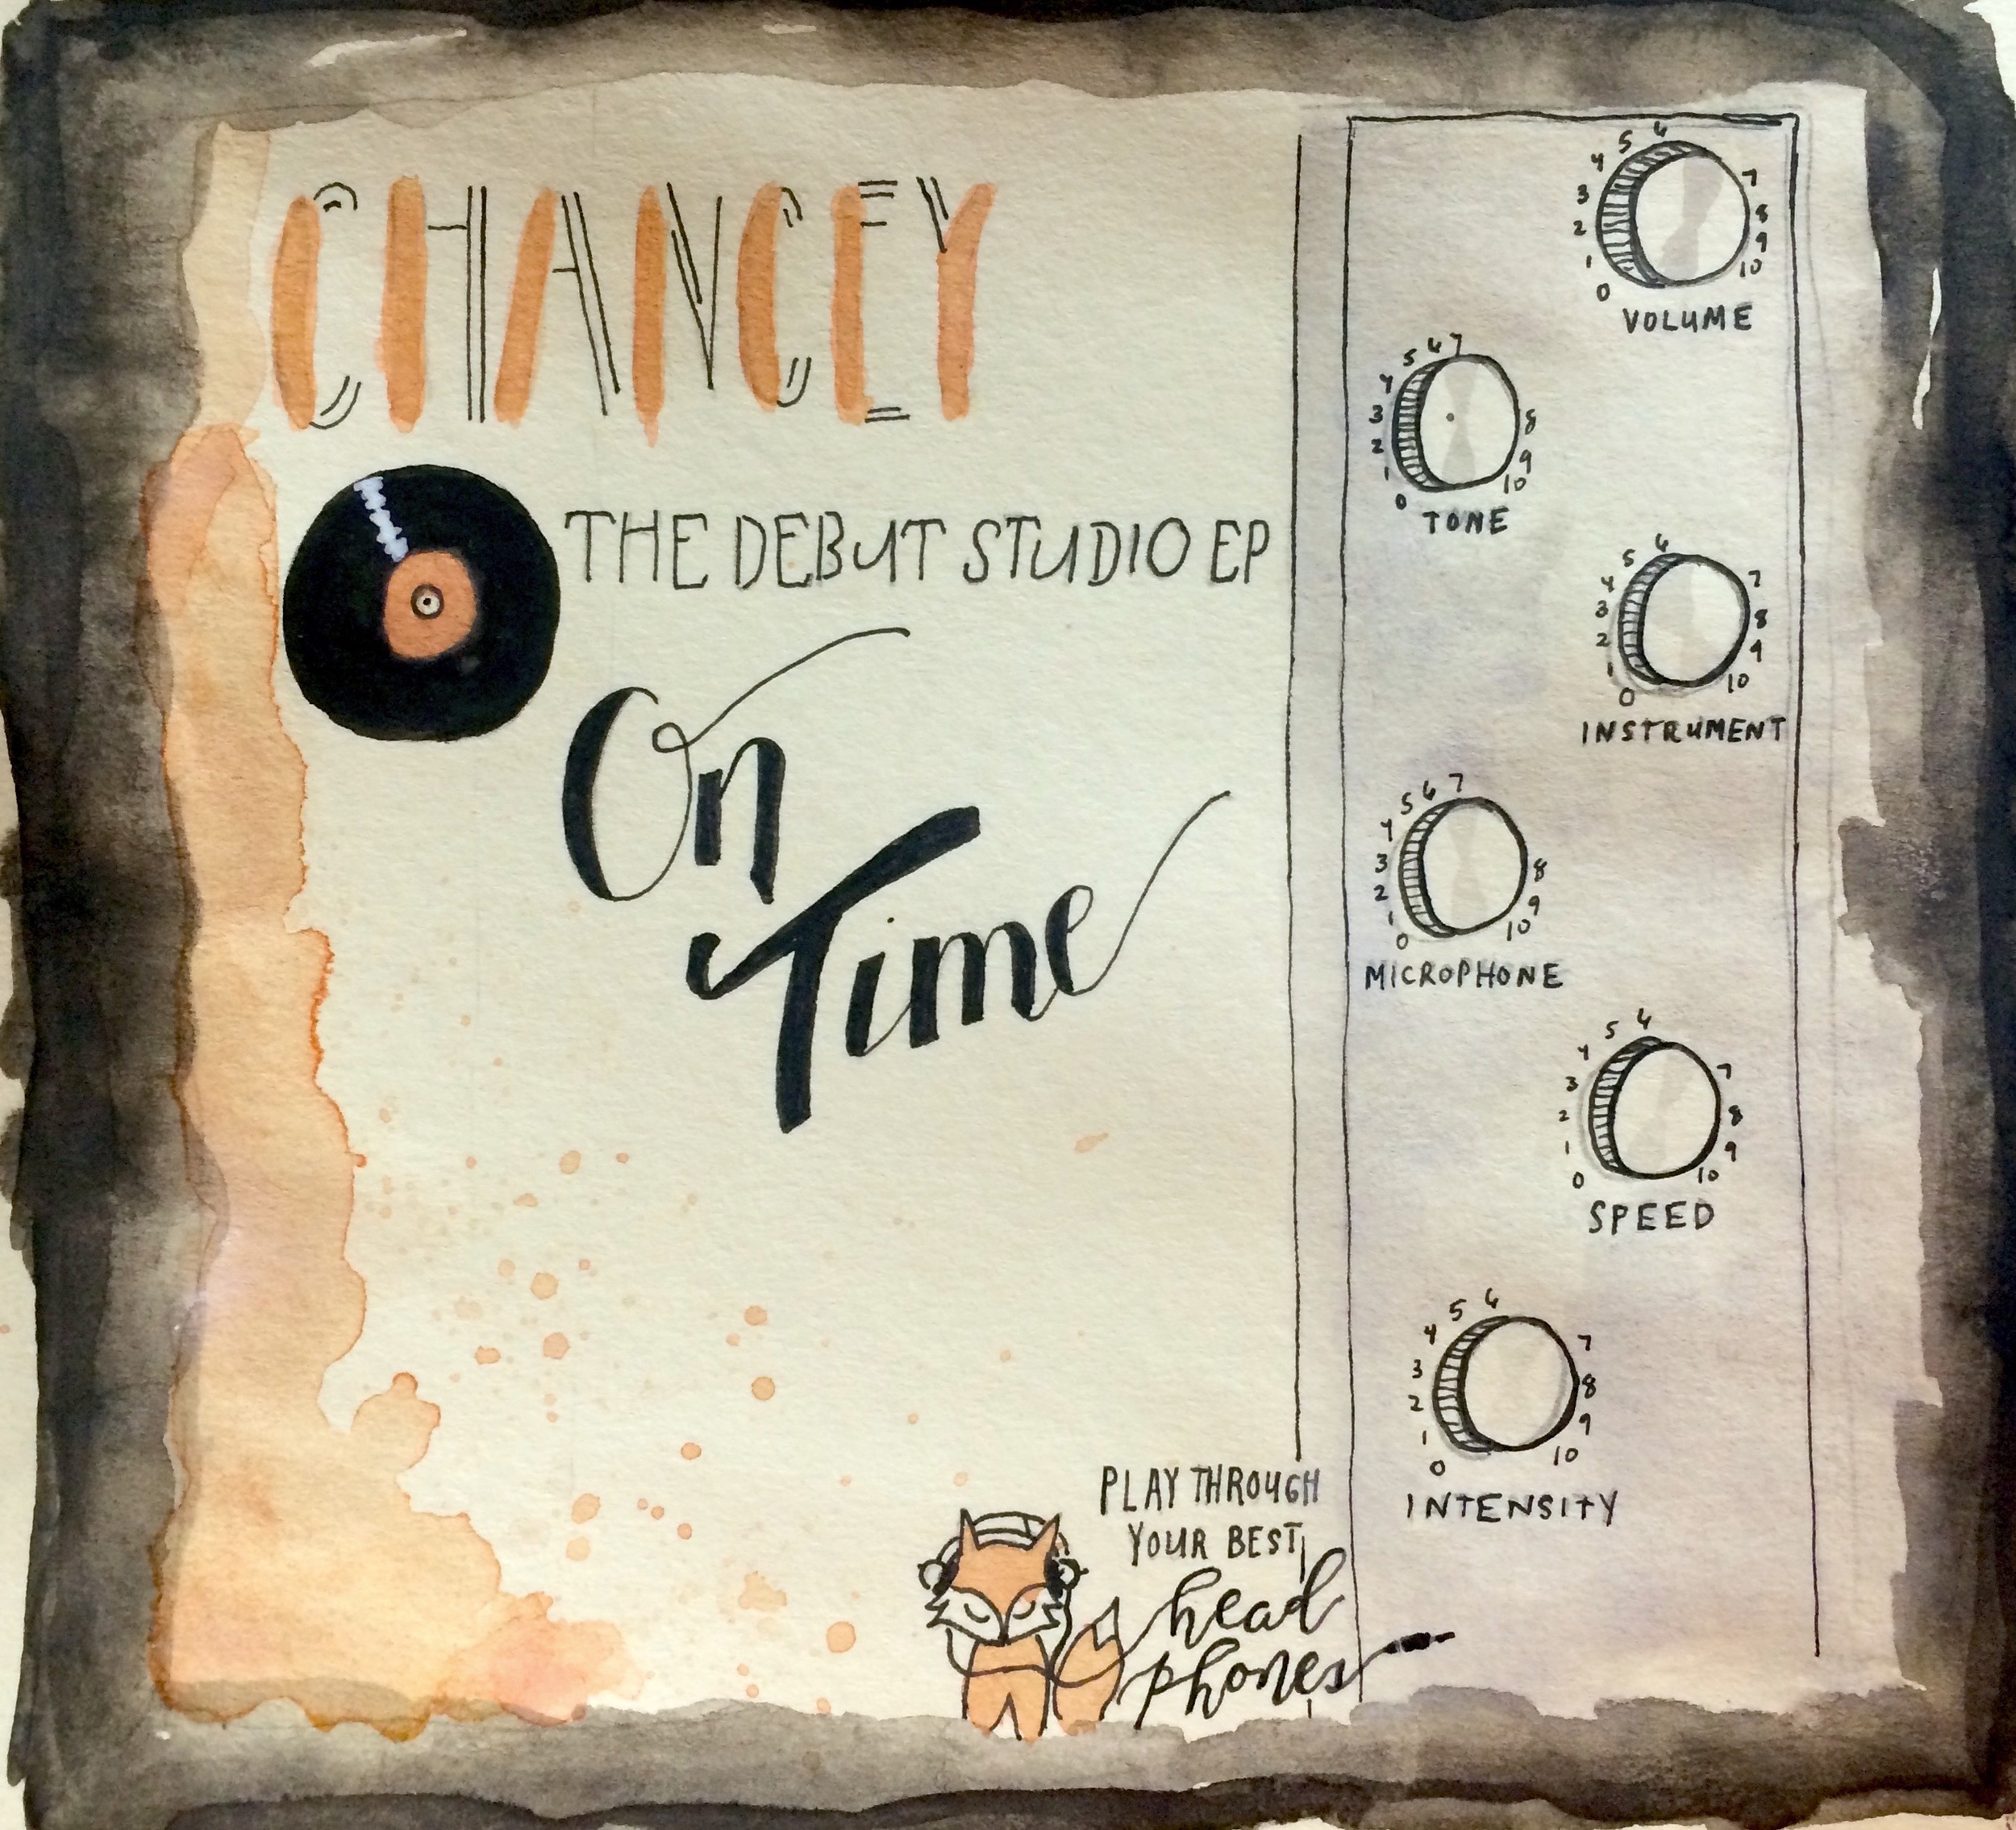 Chancey / On Time EP: Drums. Percussion - 2016